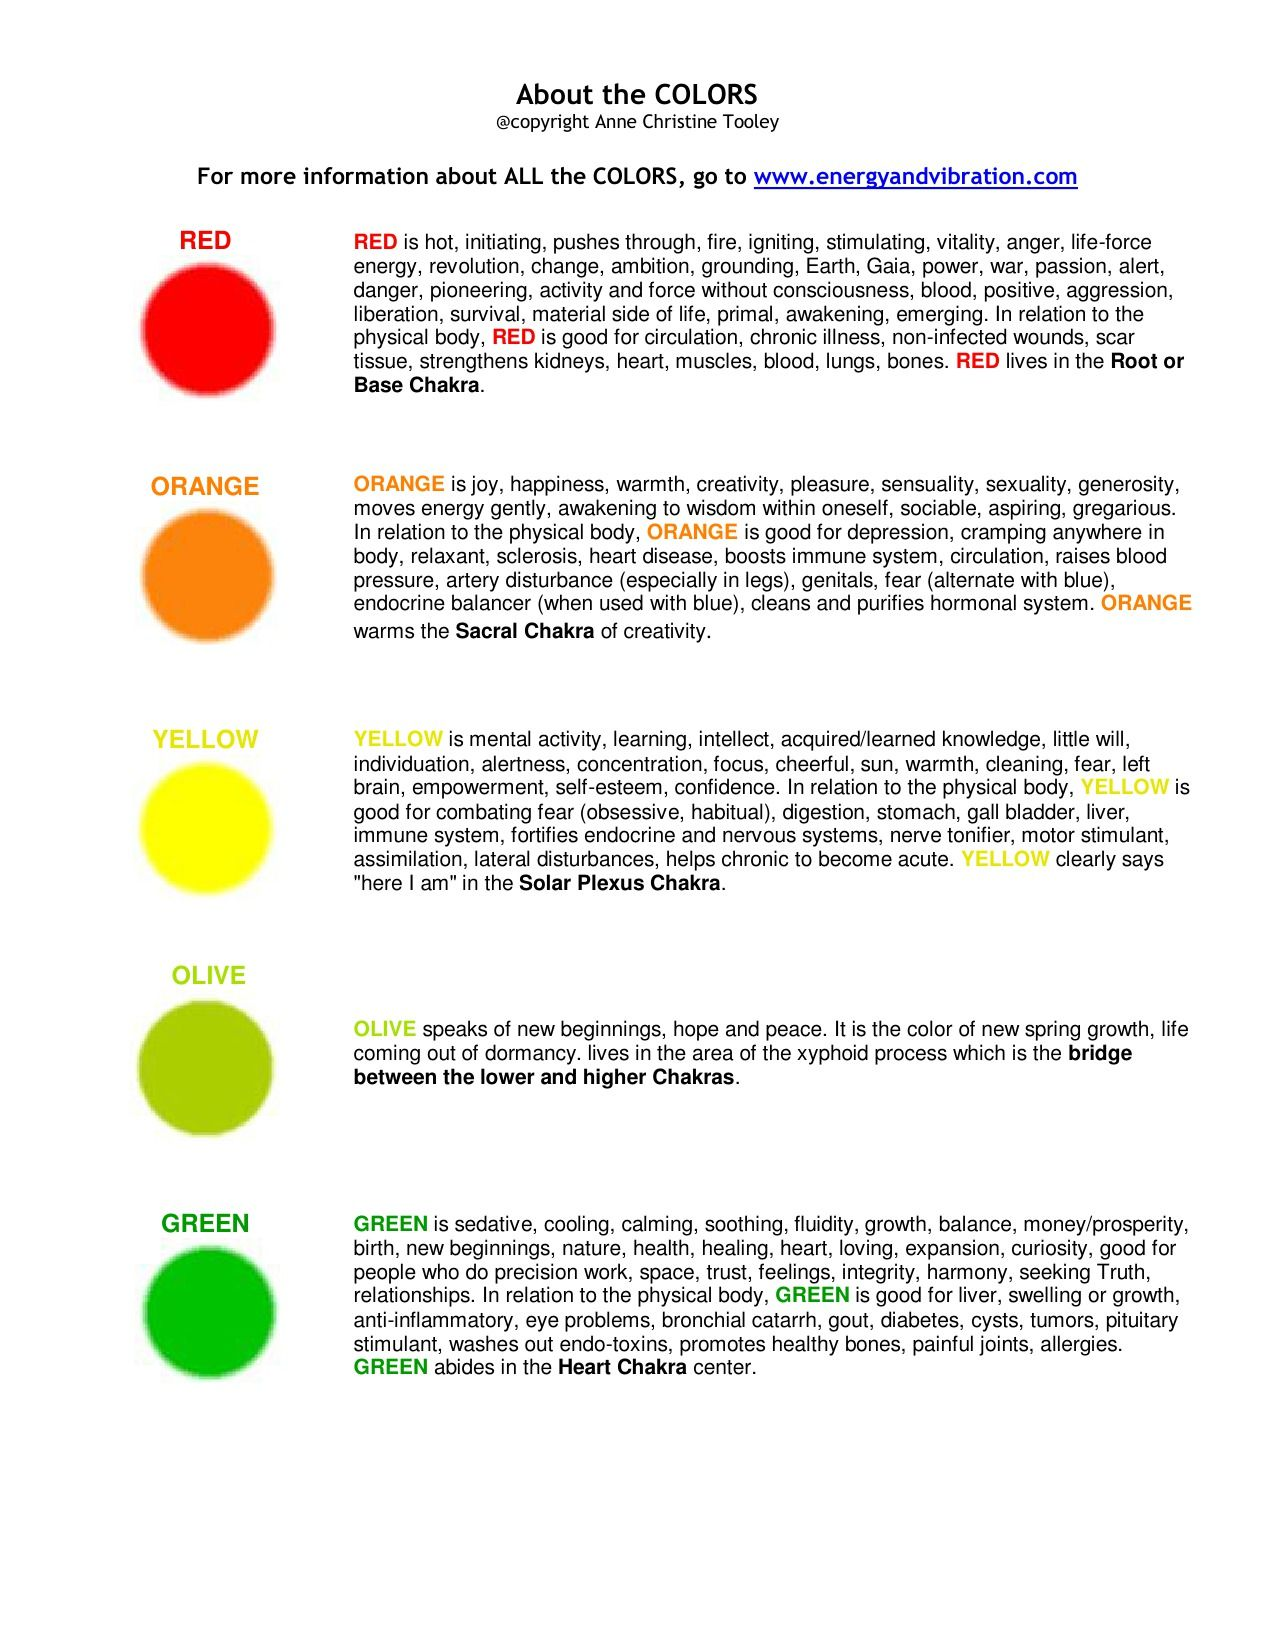 Colour therapy for stomach - You Can Find More Information About All The Colors Color Light And